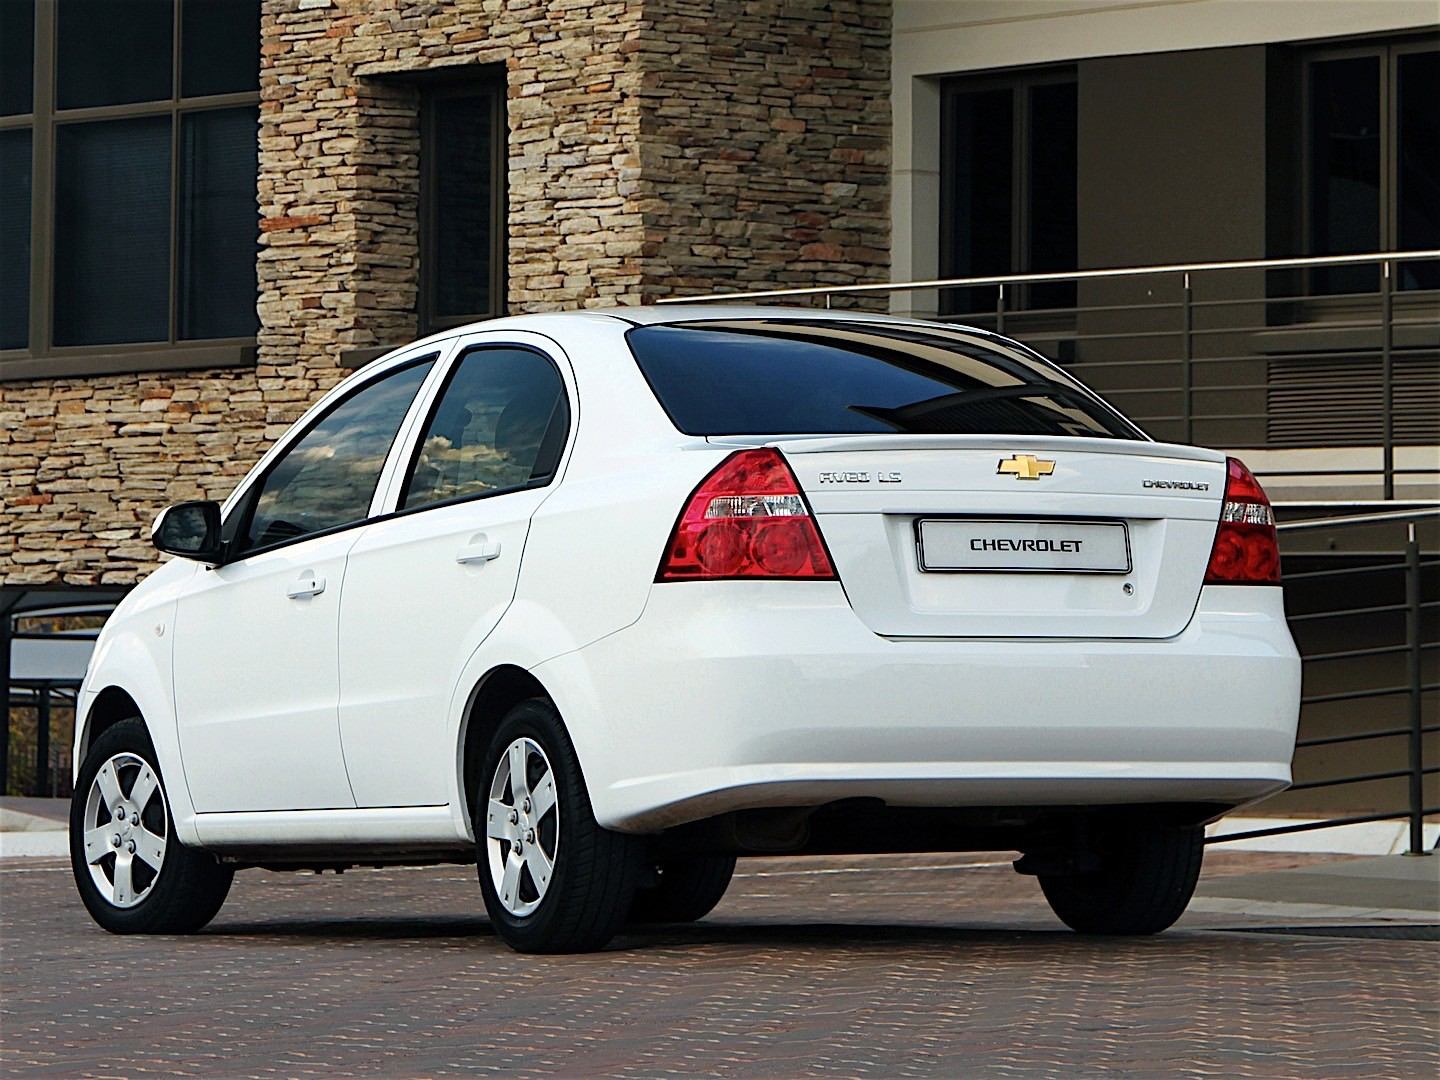 CHEVROLET Aveo/Kalos Sedan specs & photos - 2005, 2006 ...